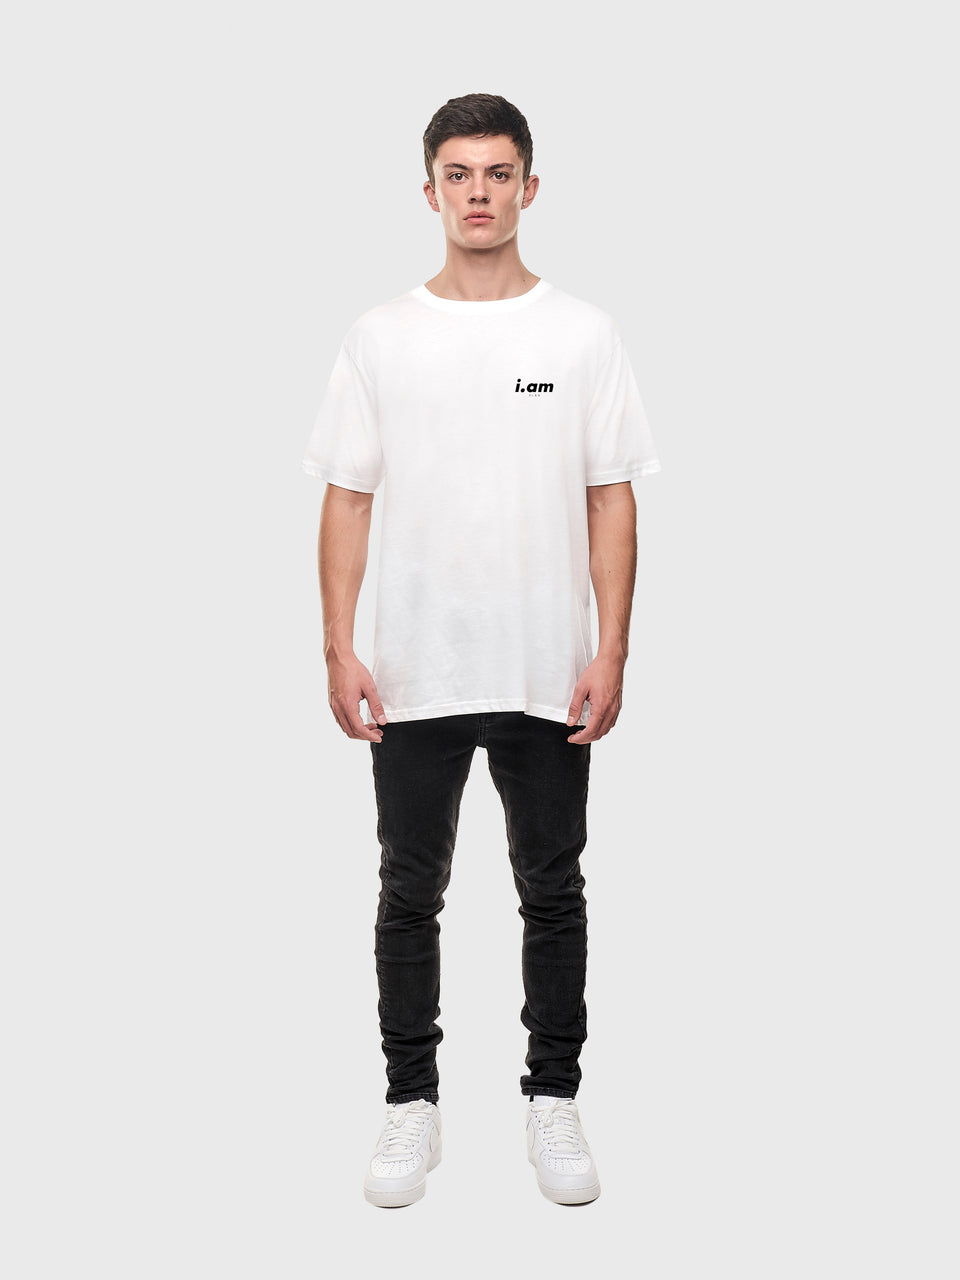 Making It - White - Unisex T